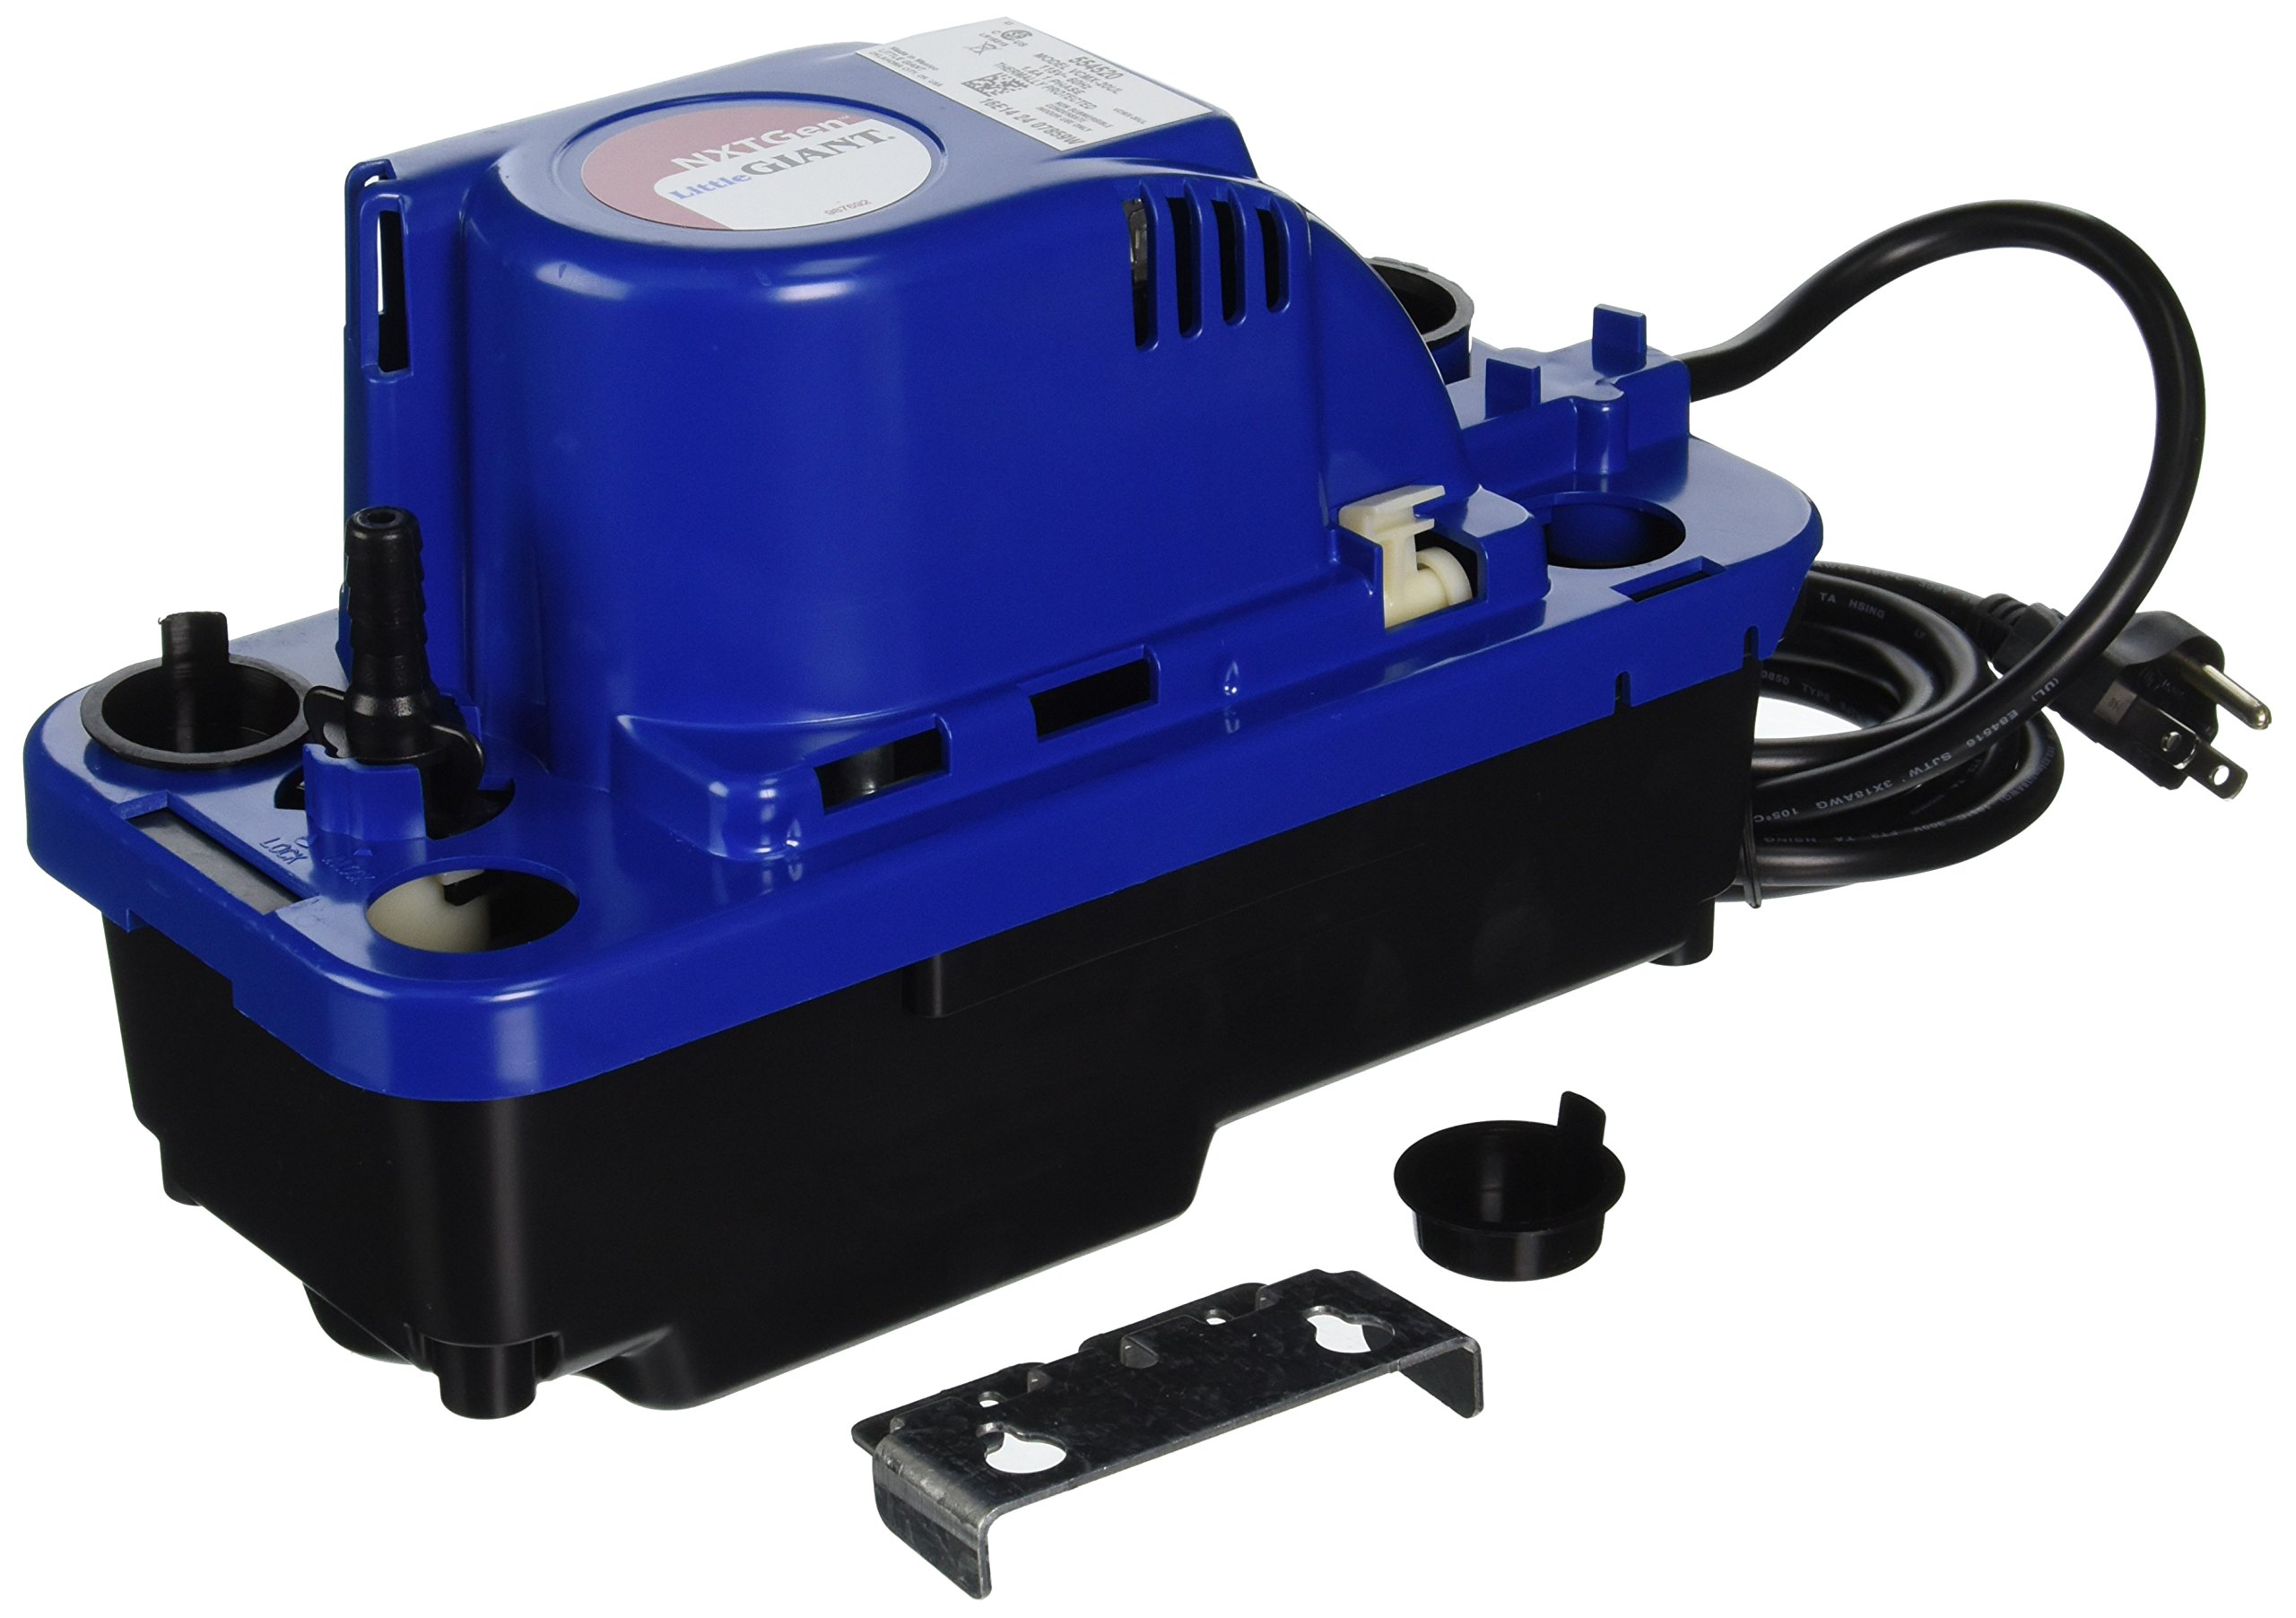 Little Giant VCMX-20UL1/30 HP Automatic Condensate Removal Pump, 6' Power Cord (554520) by LITTLE GIANT (Image #1)